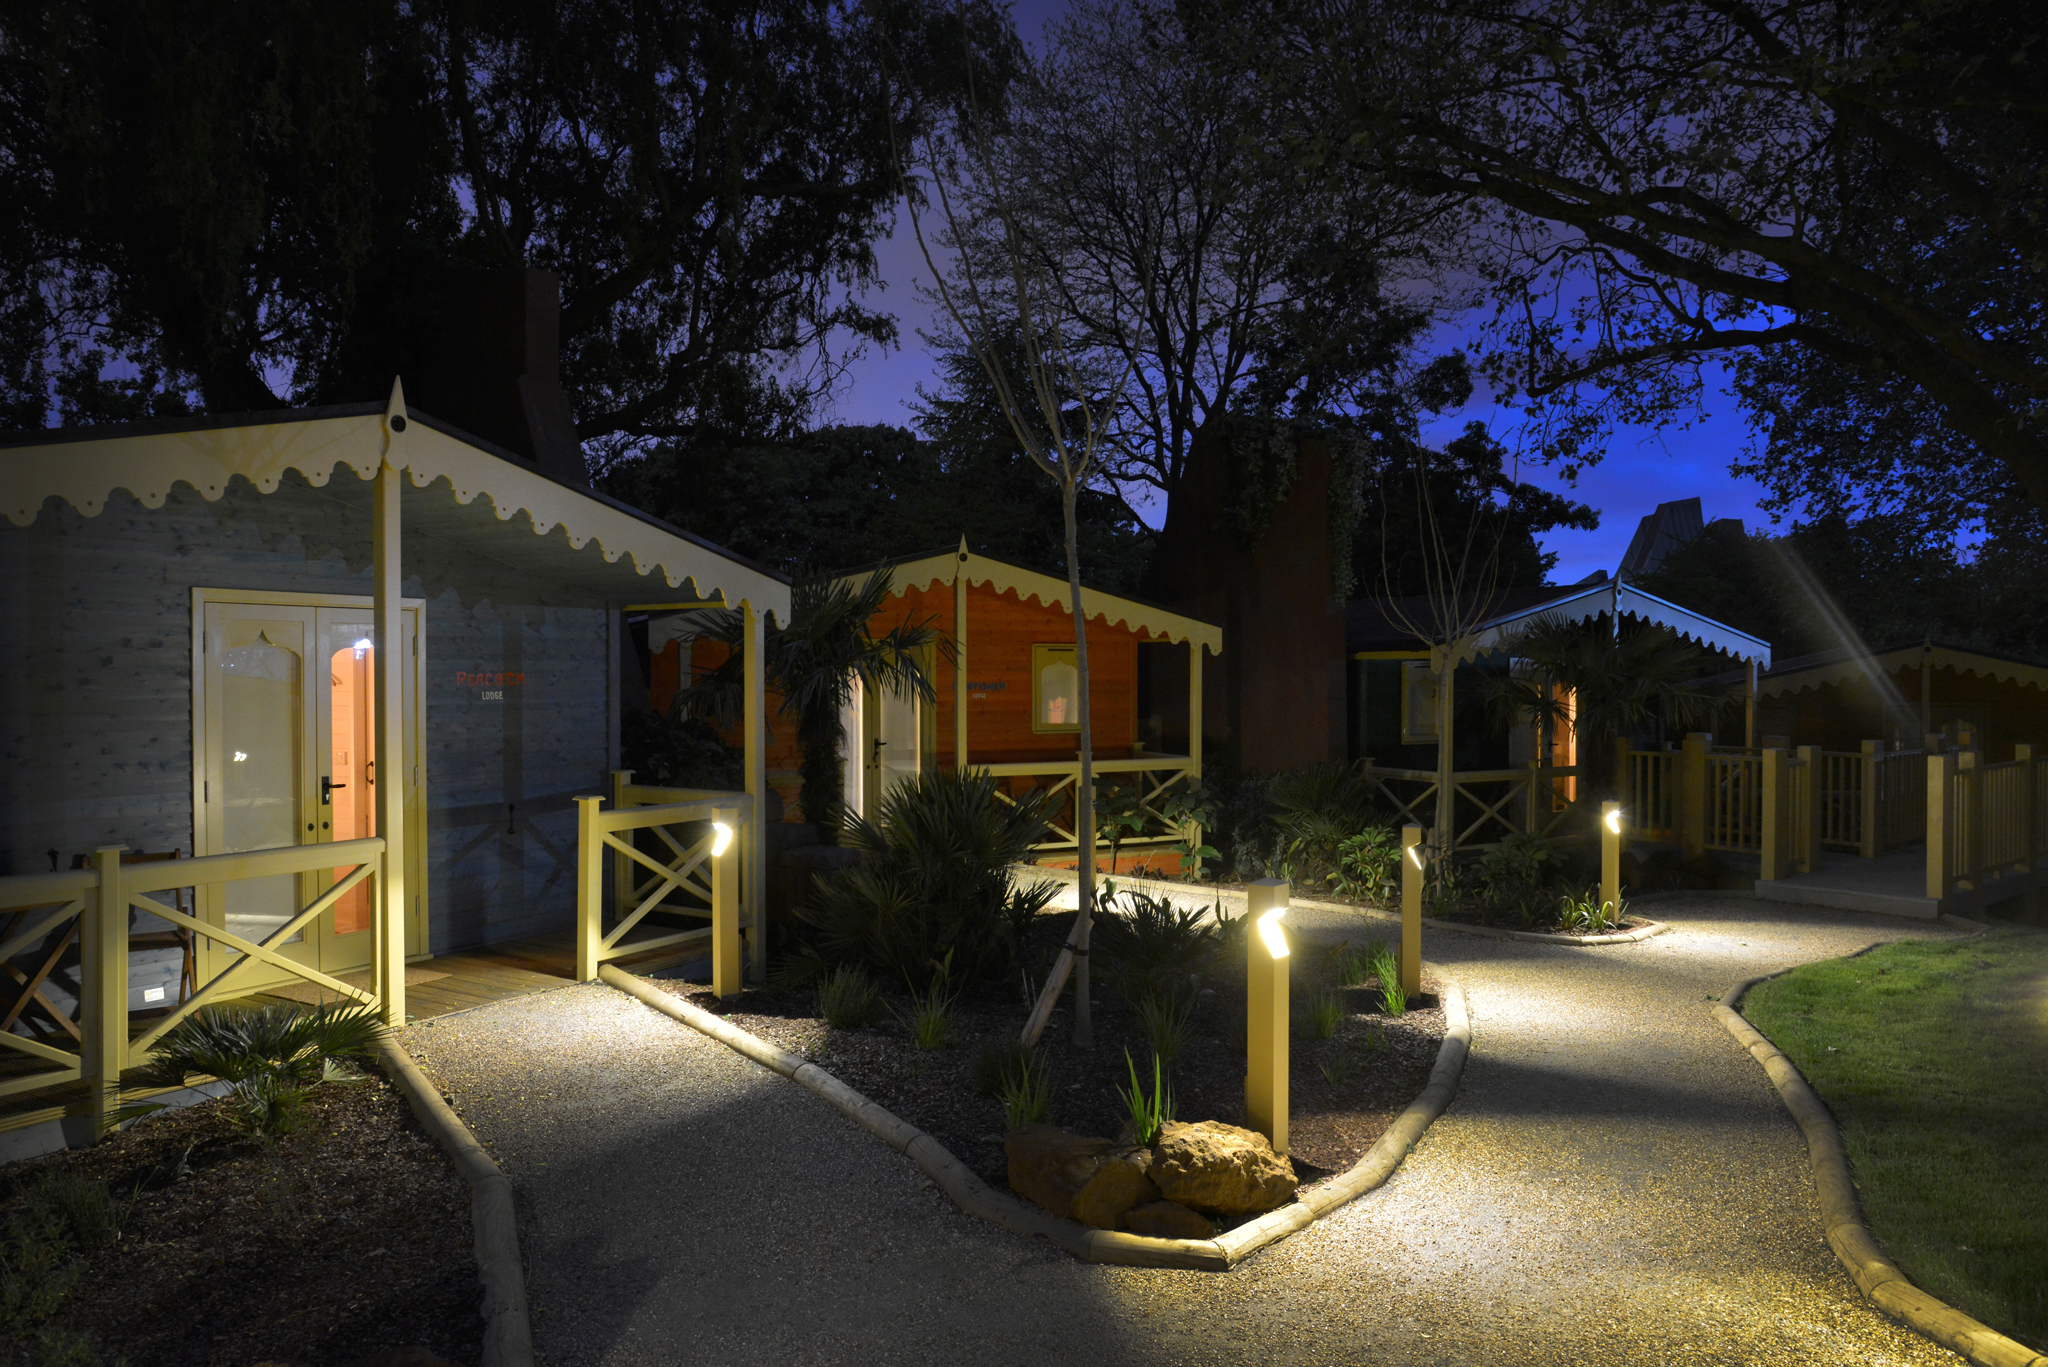 Gir Lion Lodge accommodation at London Zoo